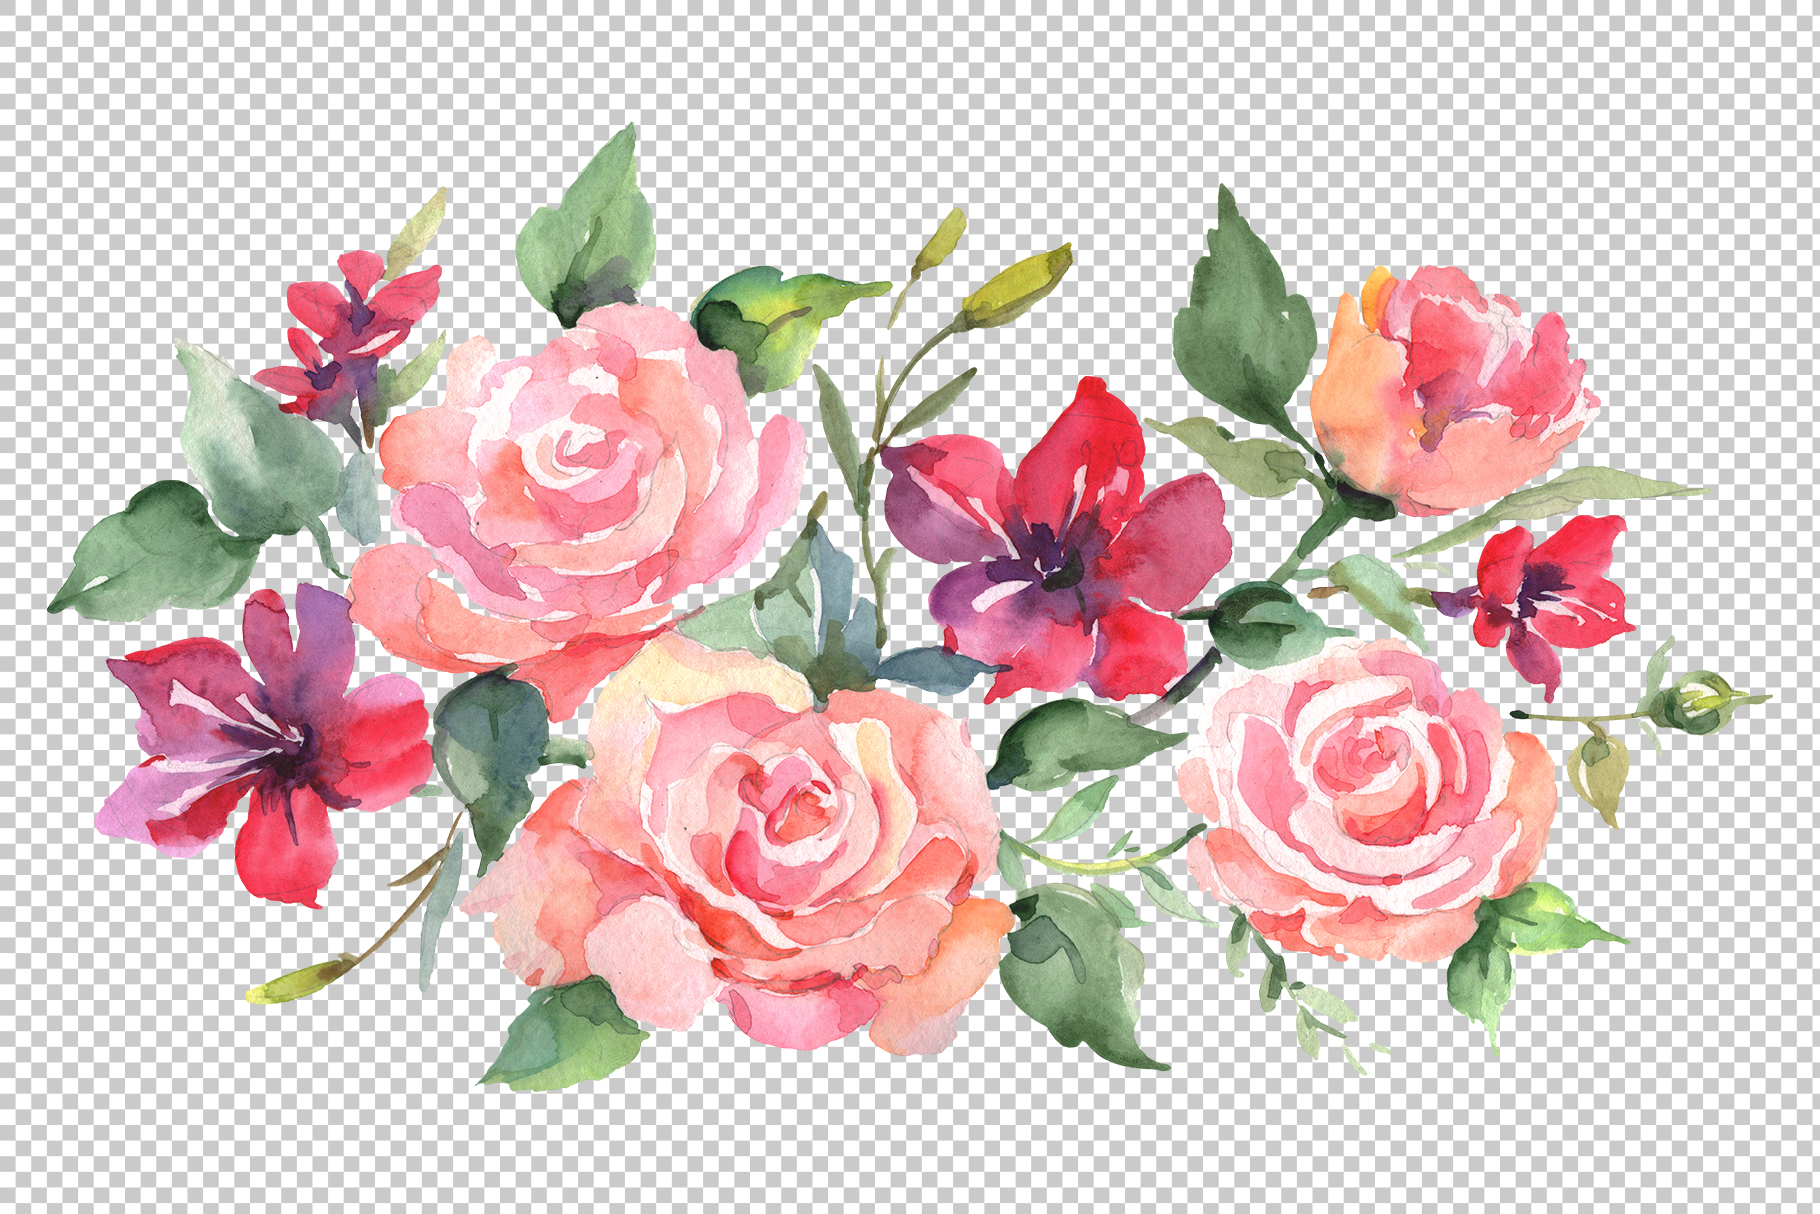 Roses bouquet joy of love watercolor png example image 2